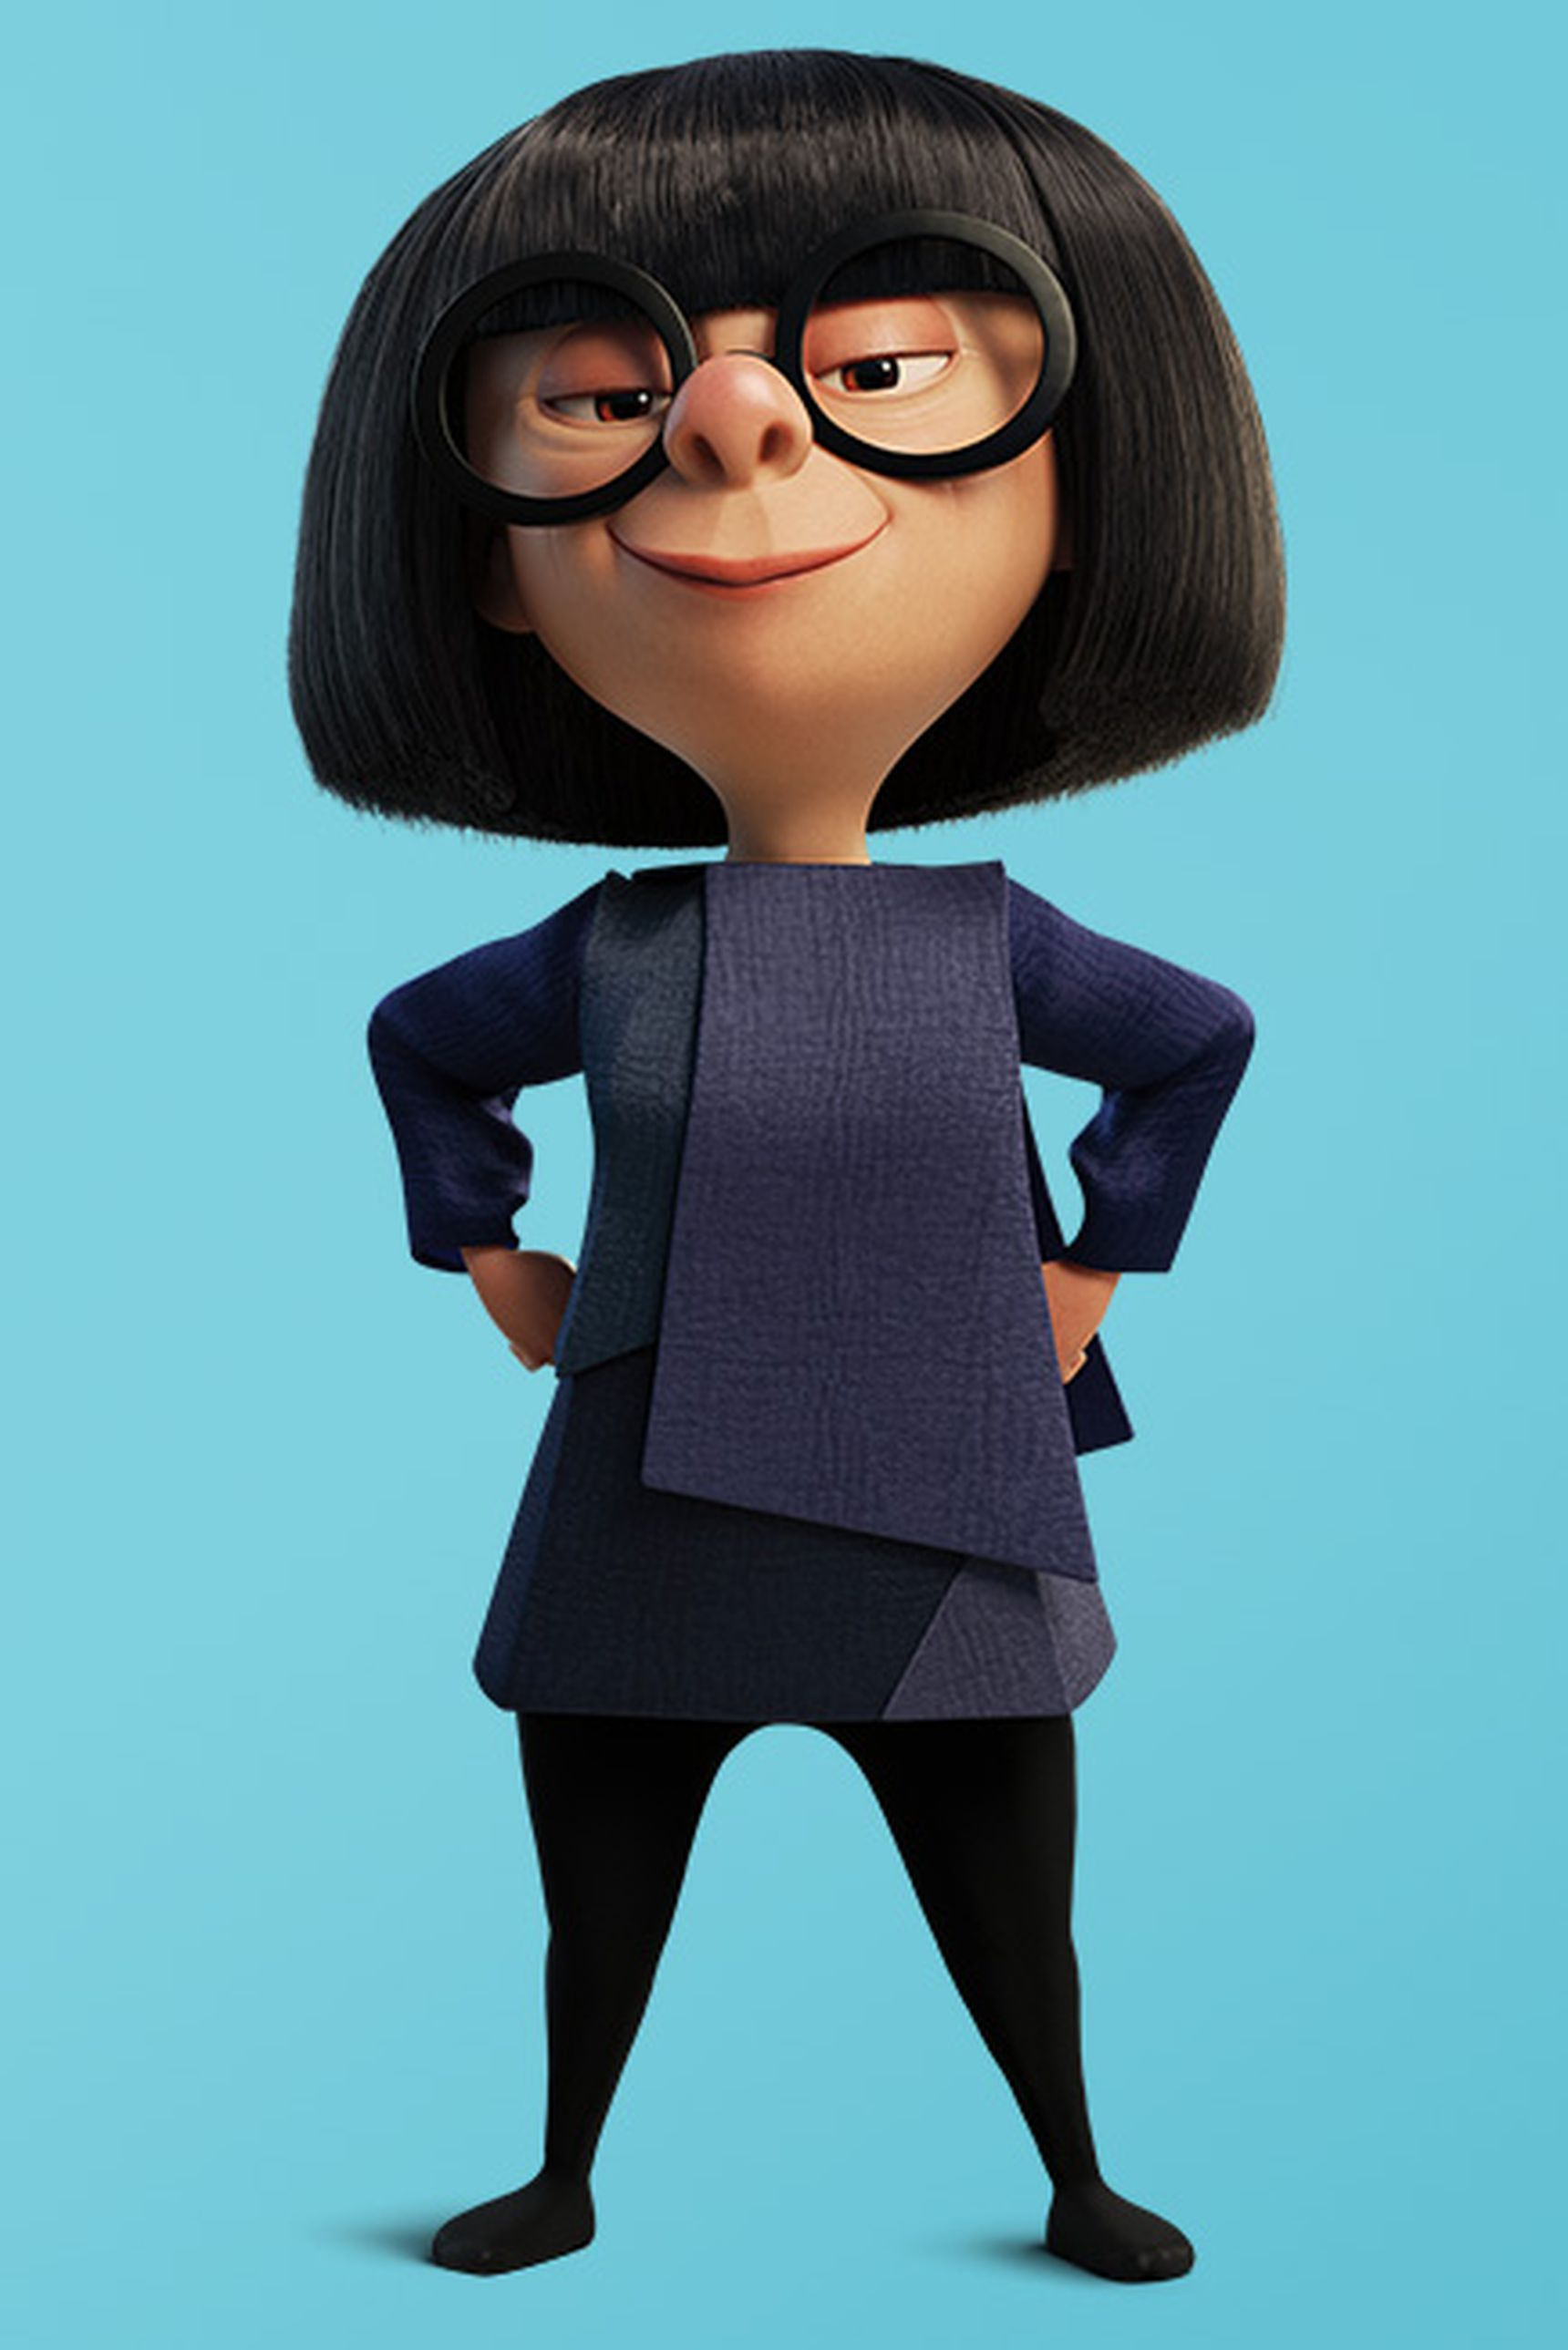 The Incredibles Edna Mode Is Film S Best Fashion Character Edna Mode The Incredibles Animated Movies Characters